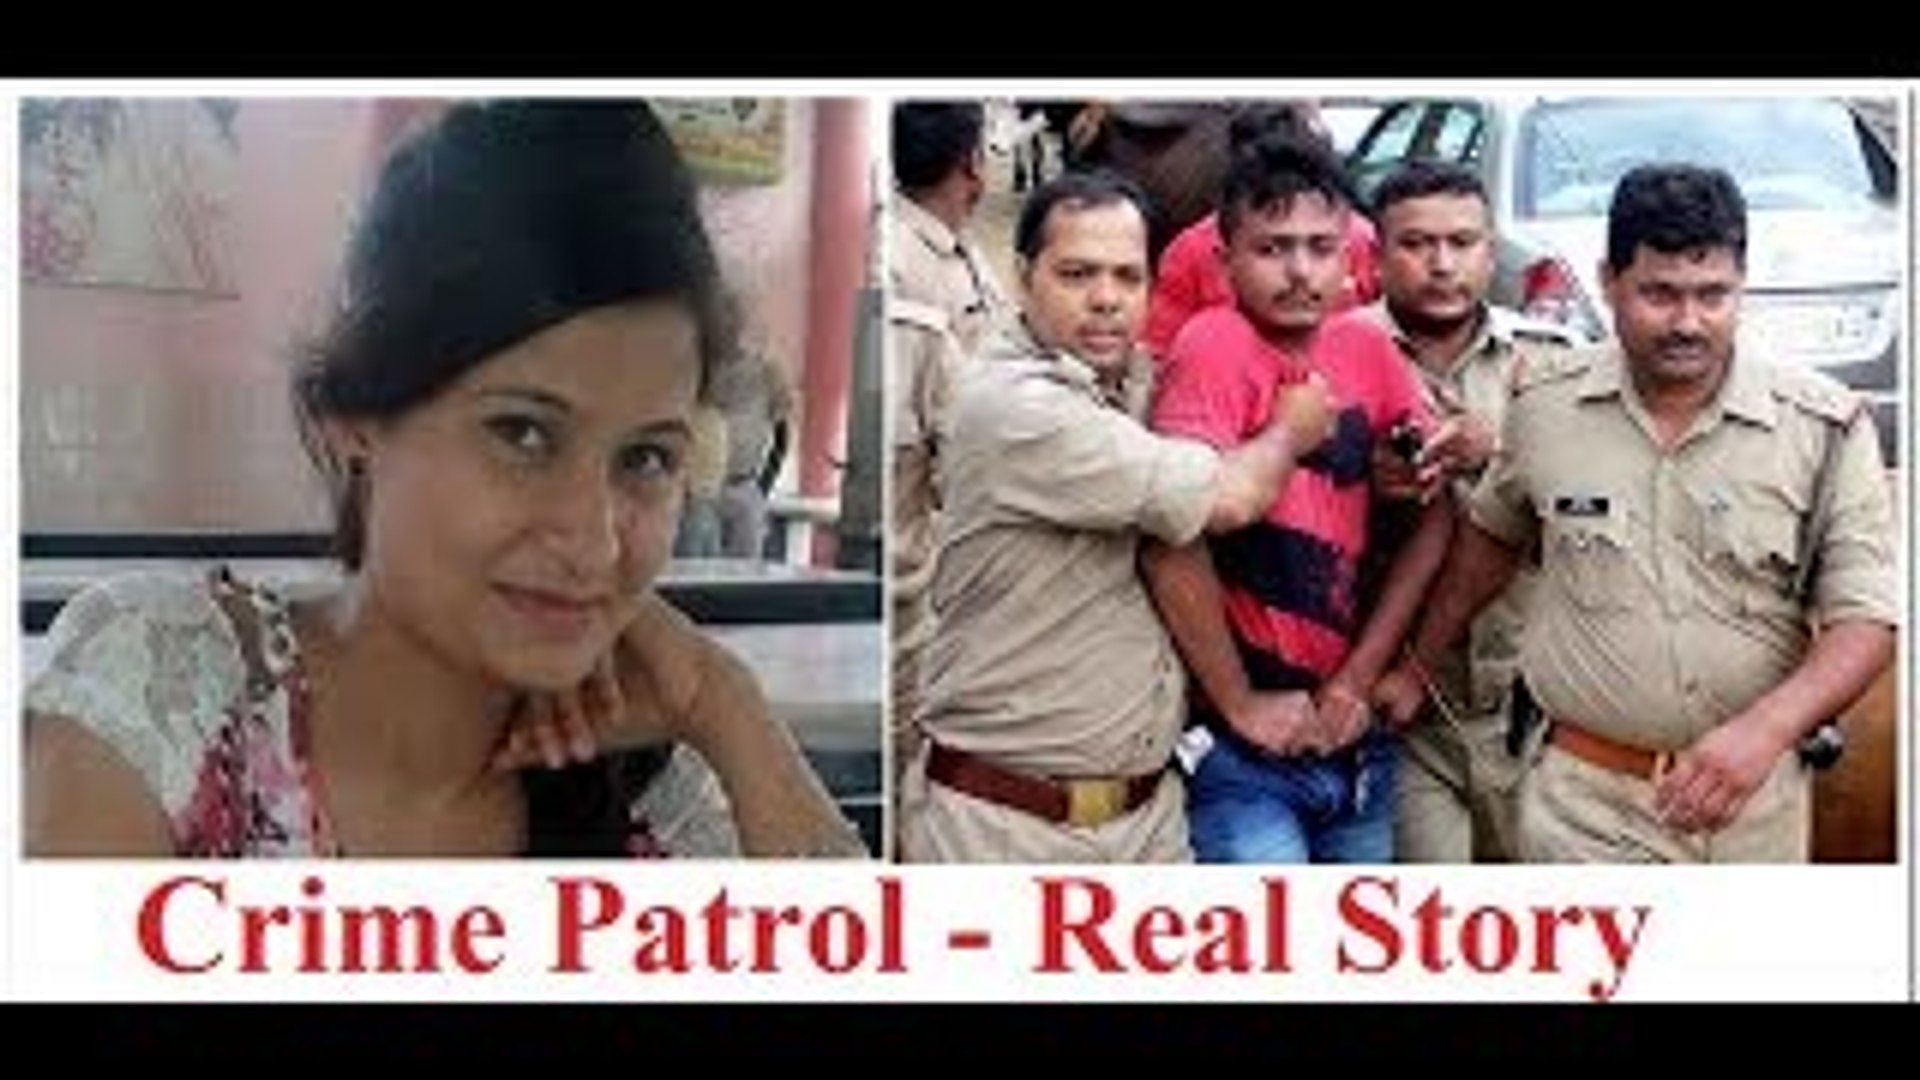 Crime Patrol (inside story) - CASE 65 - Ep 858 - Ep 859 - real story -  episode 858 episode 859